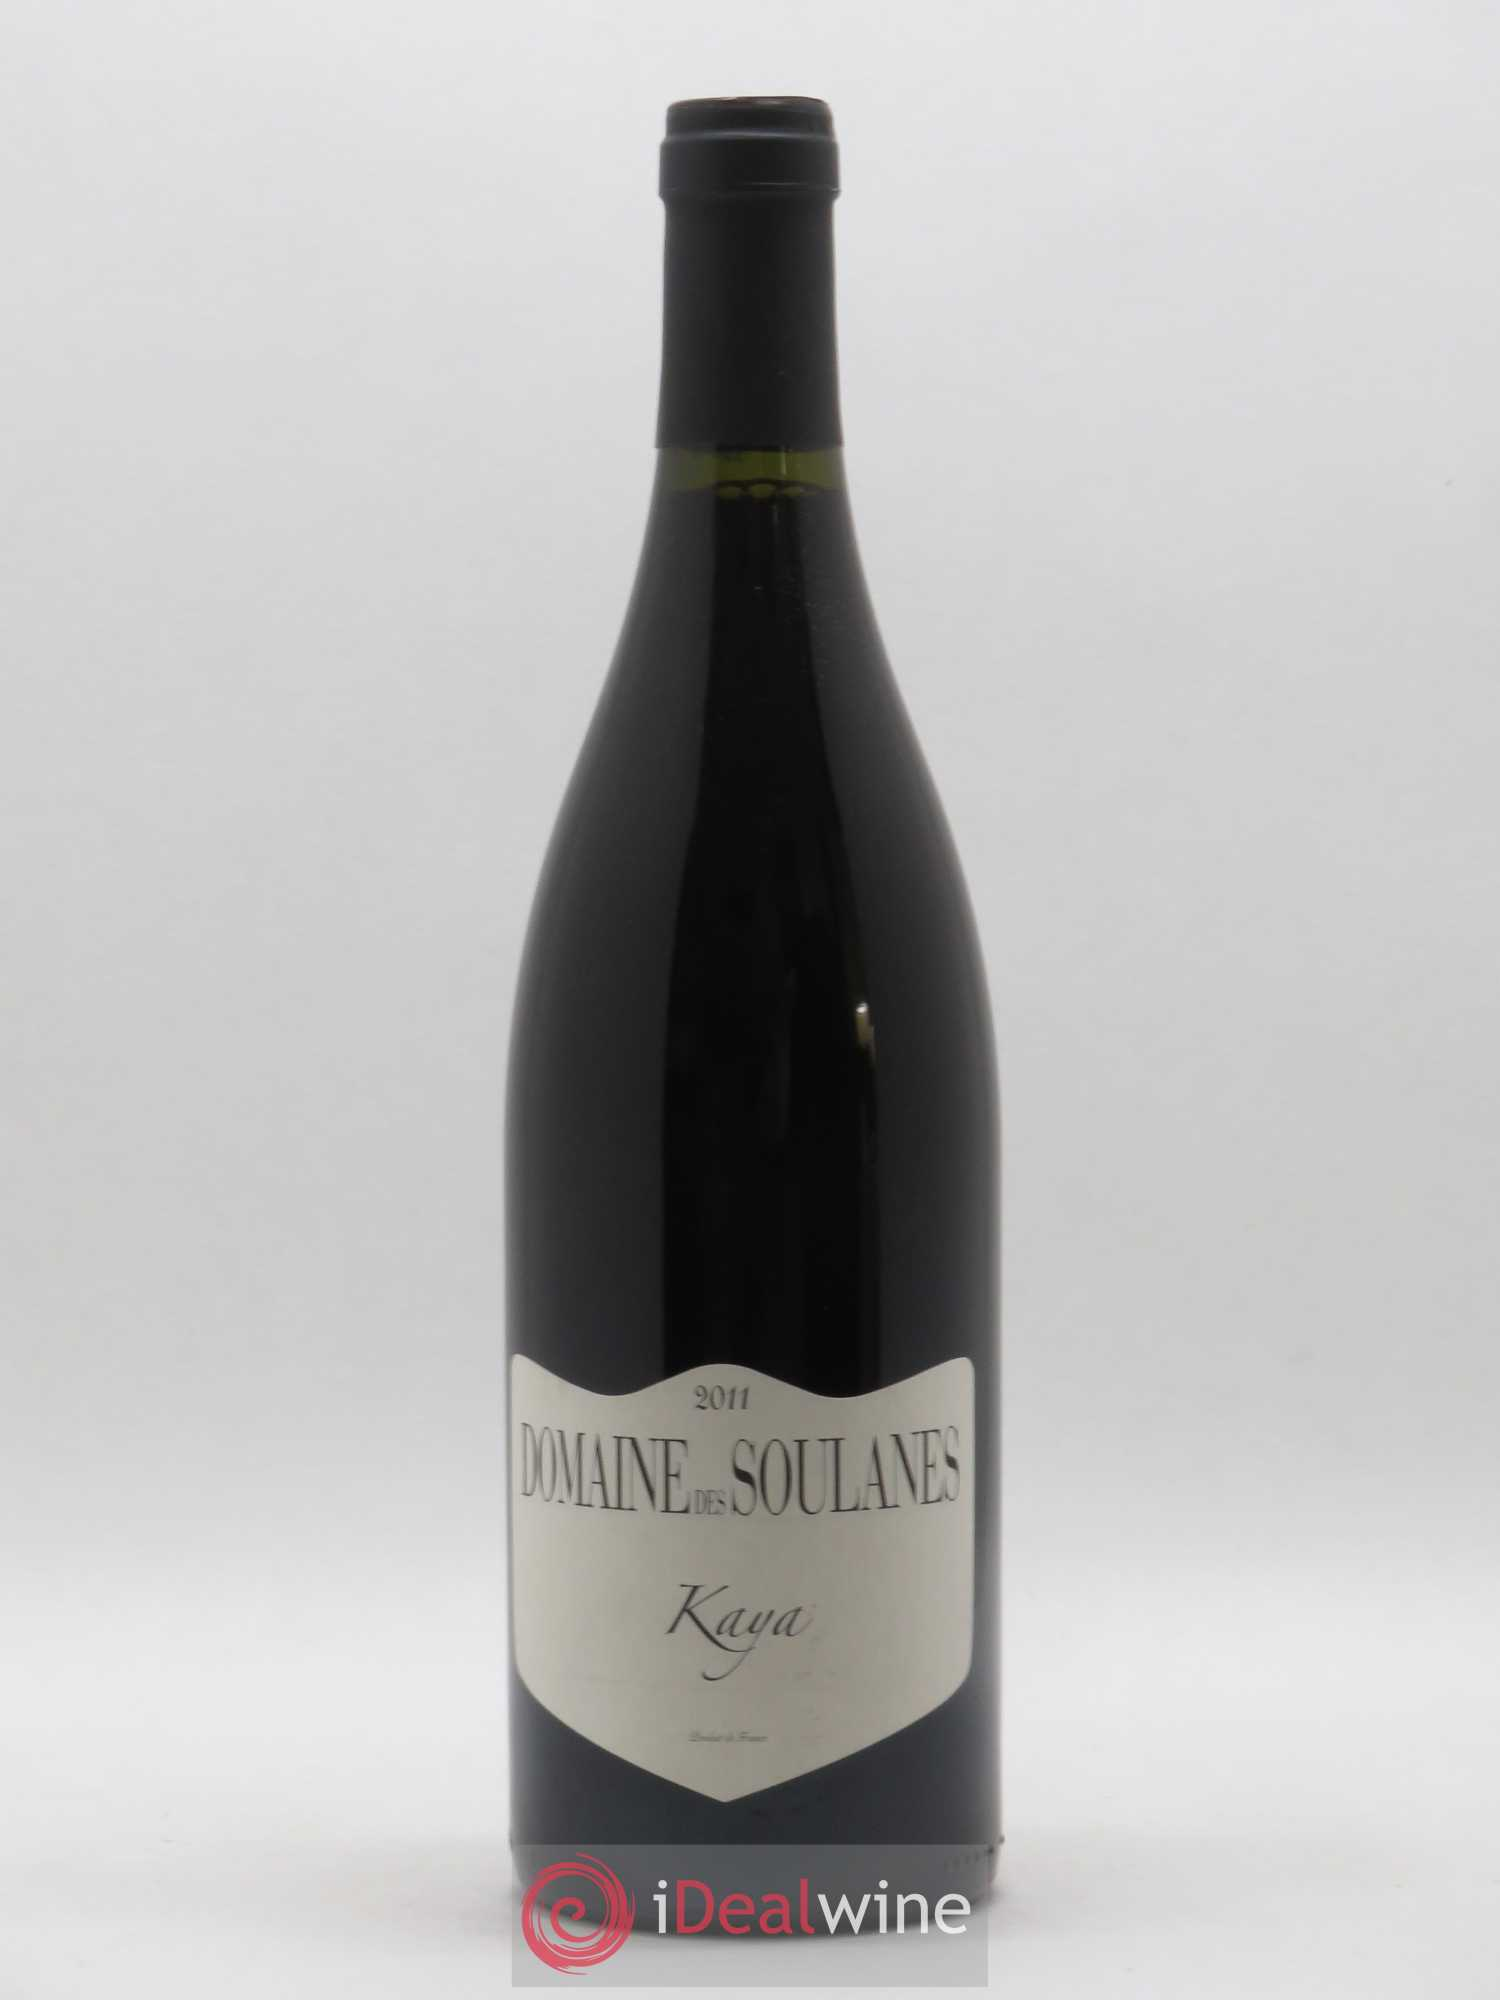 IGP Côtes Catalanes (VDP des Côtes Catalanes) Kaya Domaine des Soulanes (no reserve) 2011 - Lot of 1 Bottle